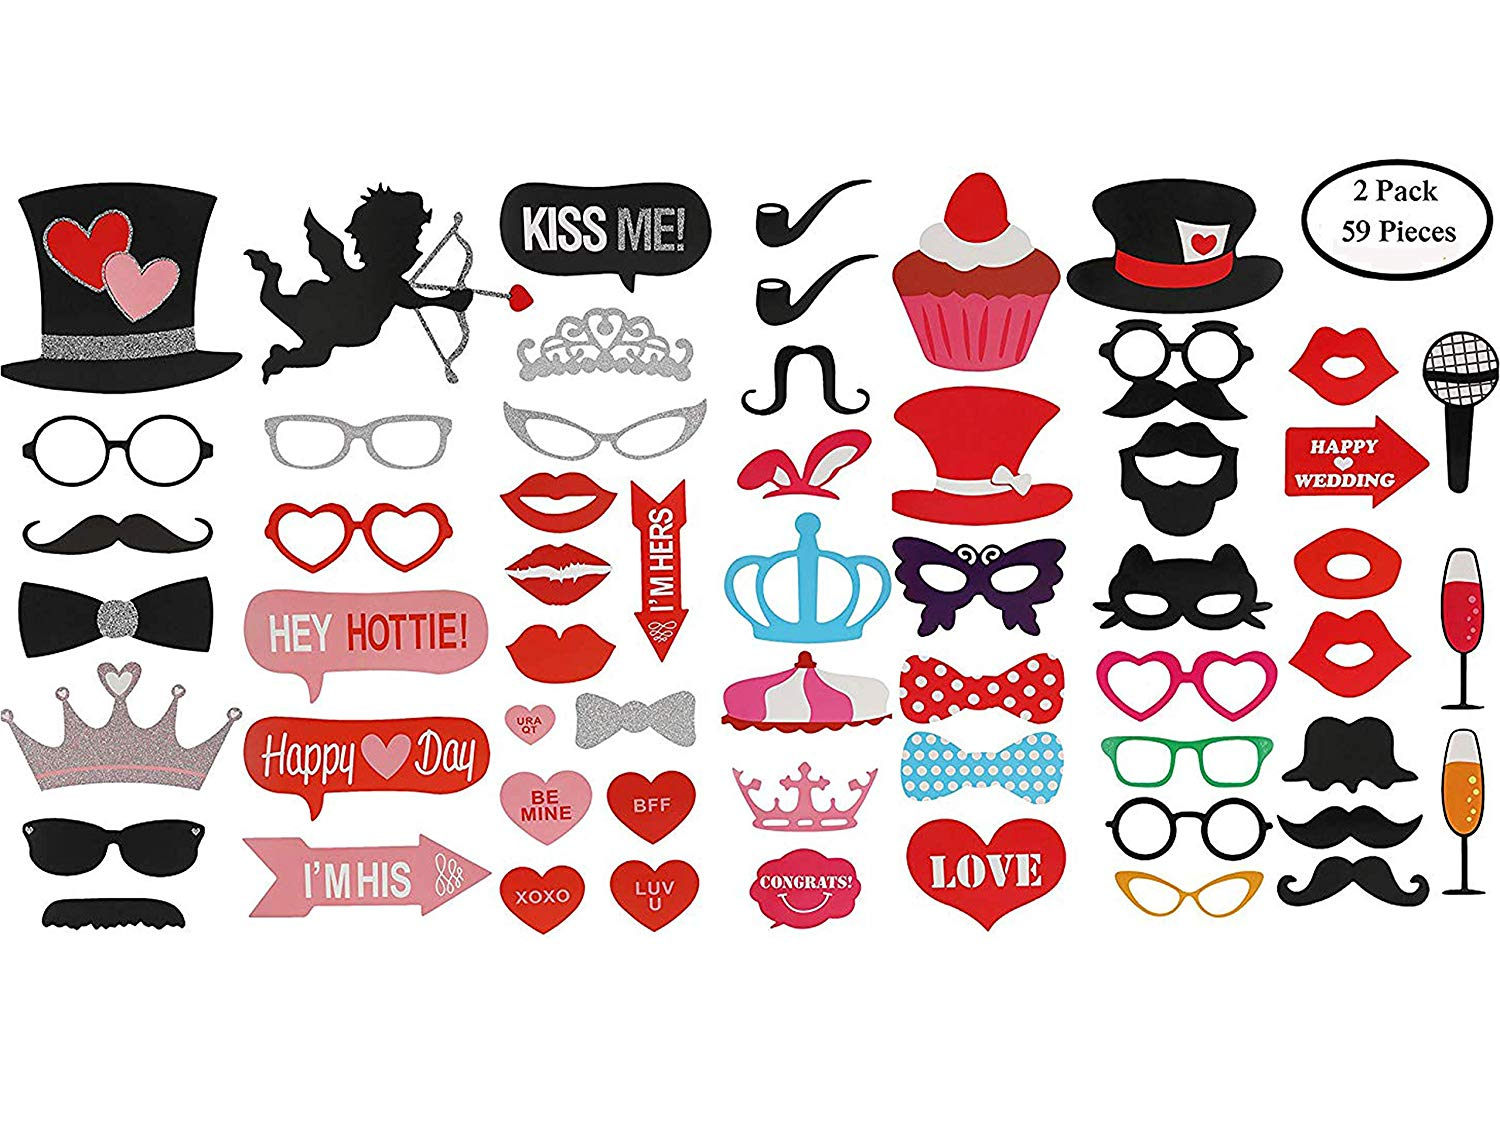 KissDate 2 Packs Valentine's Day Photo Booth Props , One 27 Pcs Glitter Props and 32 Pcs Weeding Props, Tiara Angel Hearts Mustaches Perfect for Party Decorations Birthday Graduation